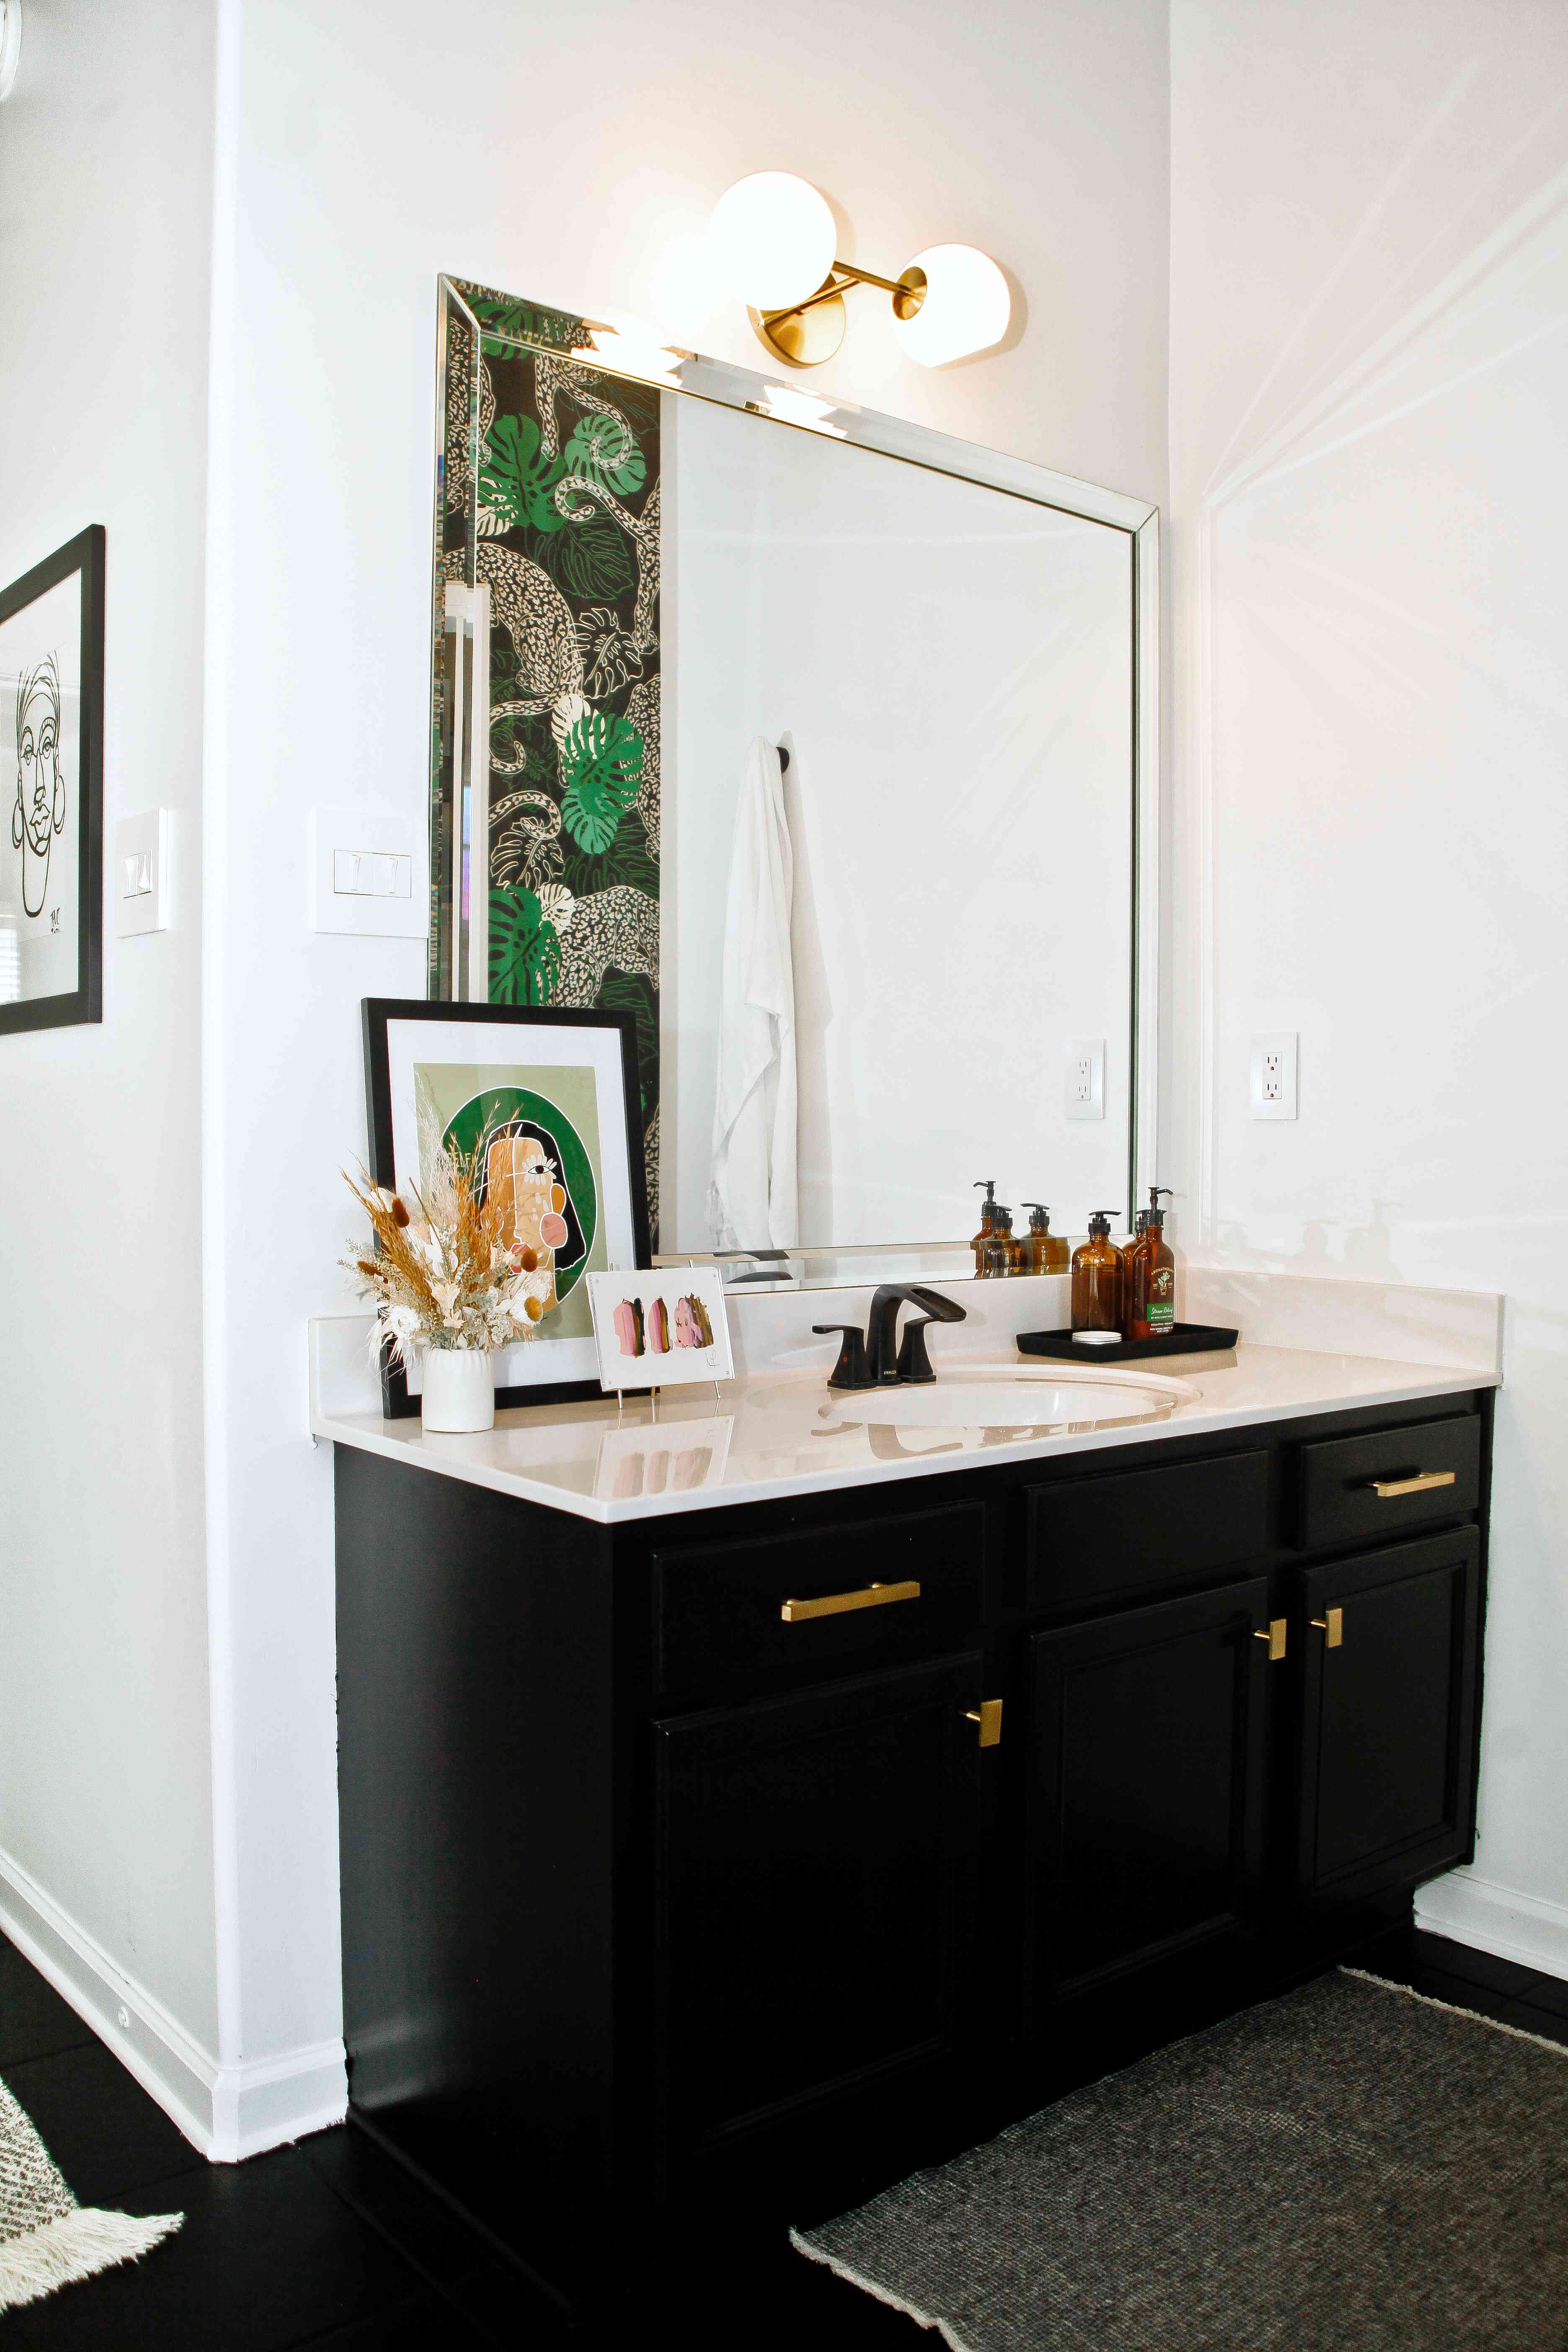 one room i'll never forget - laquita tate vanity with sconce and leaning artwork